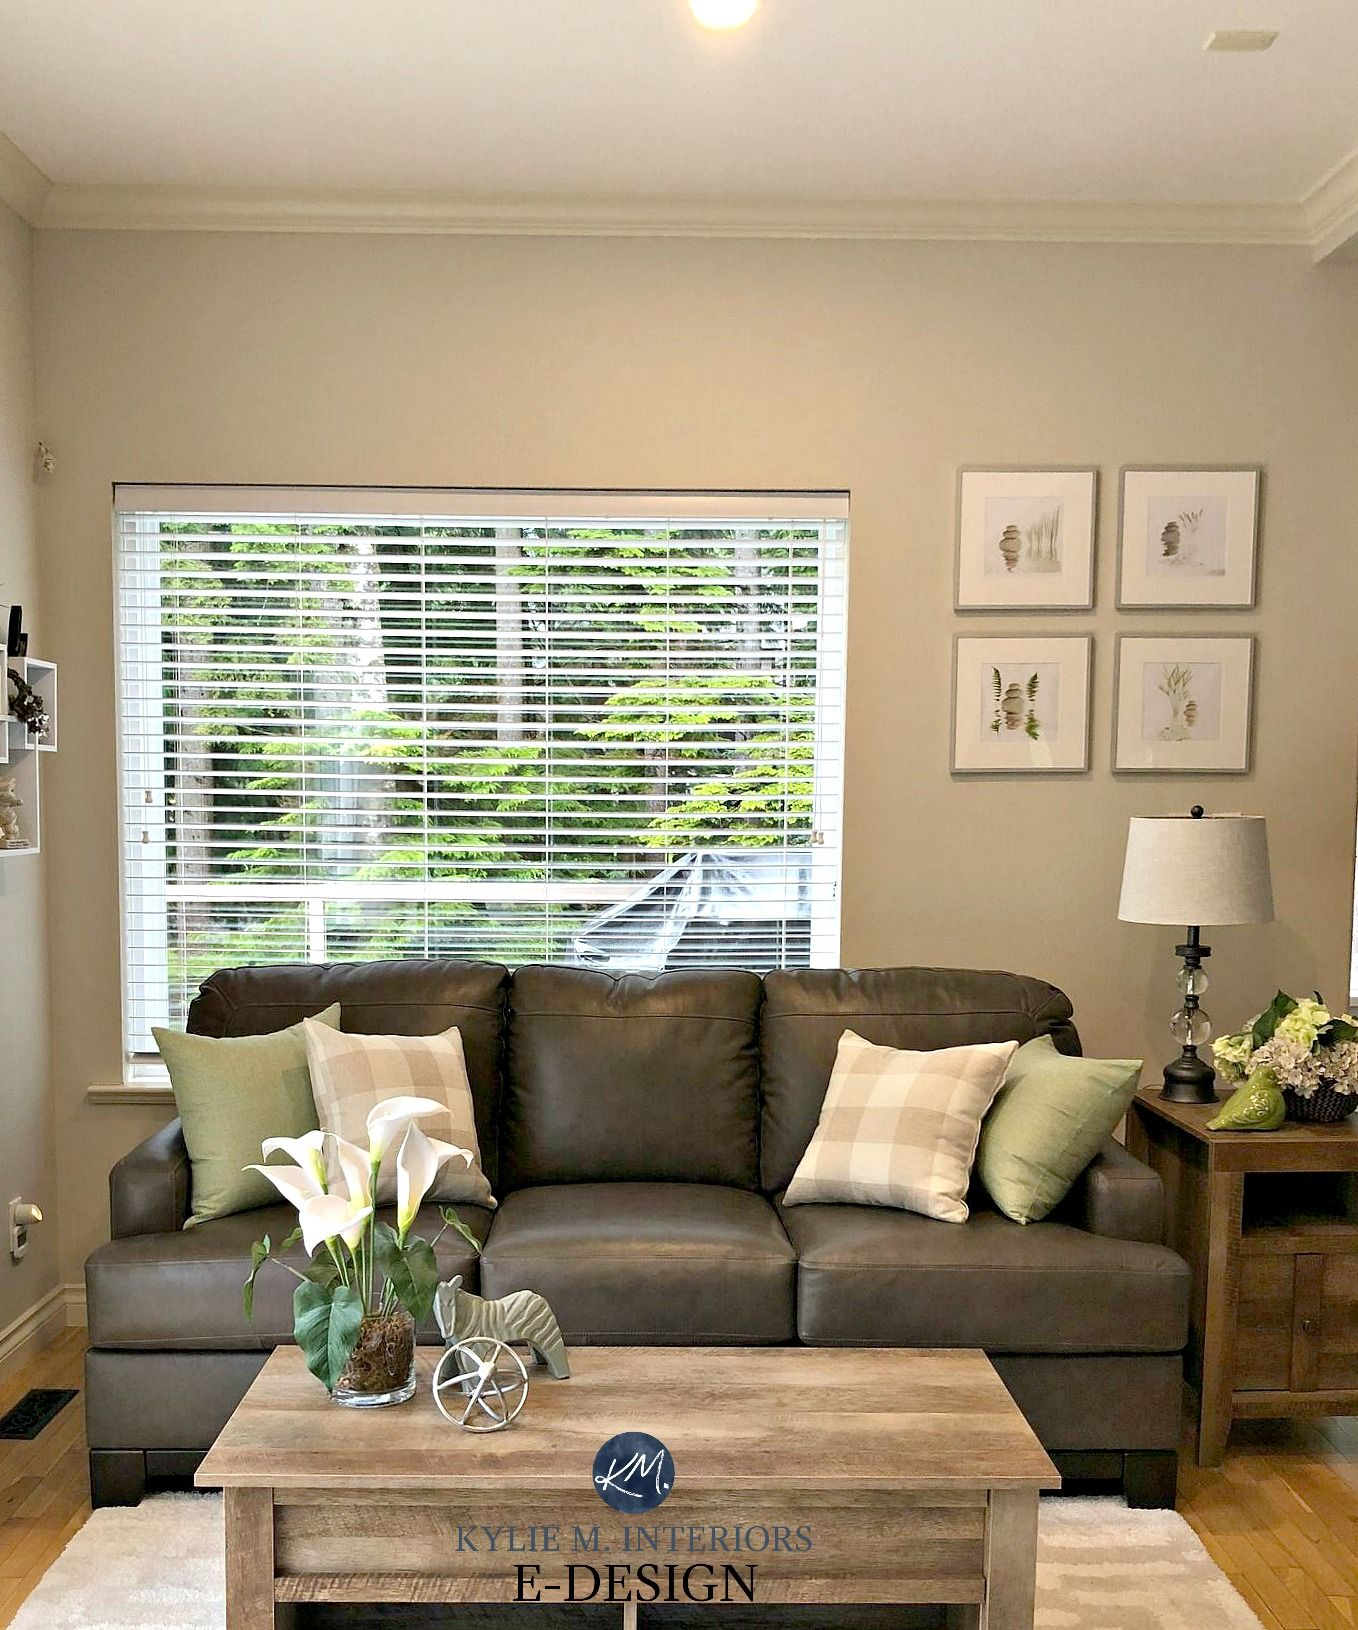 An E Design With Edgecomb Gray The Best Greige Paint Colour Kylie M Interiors Greige Living Room Brown Living Room Decor Living Room Grey